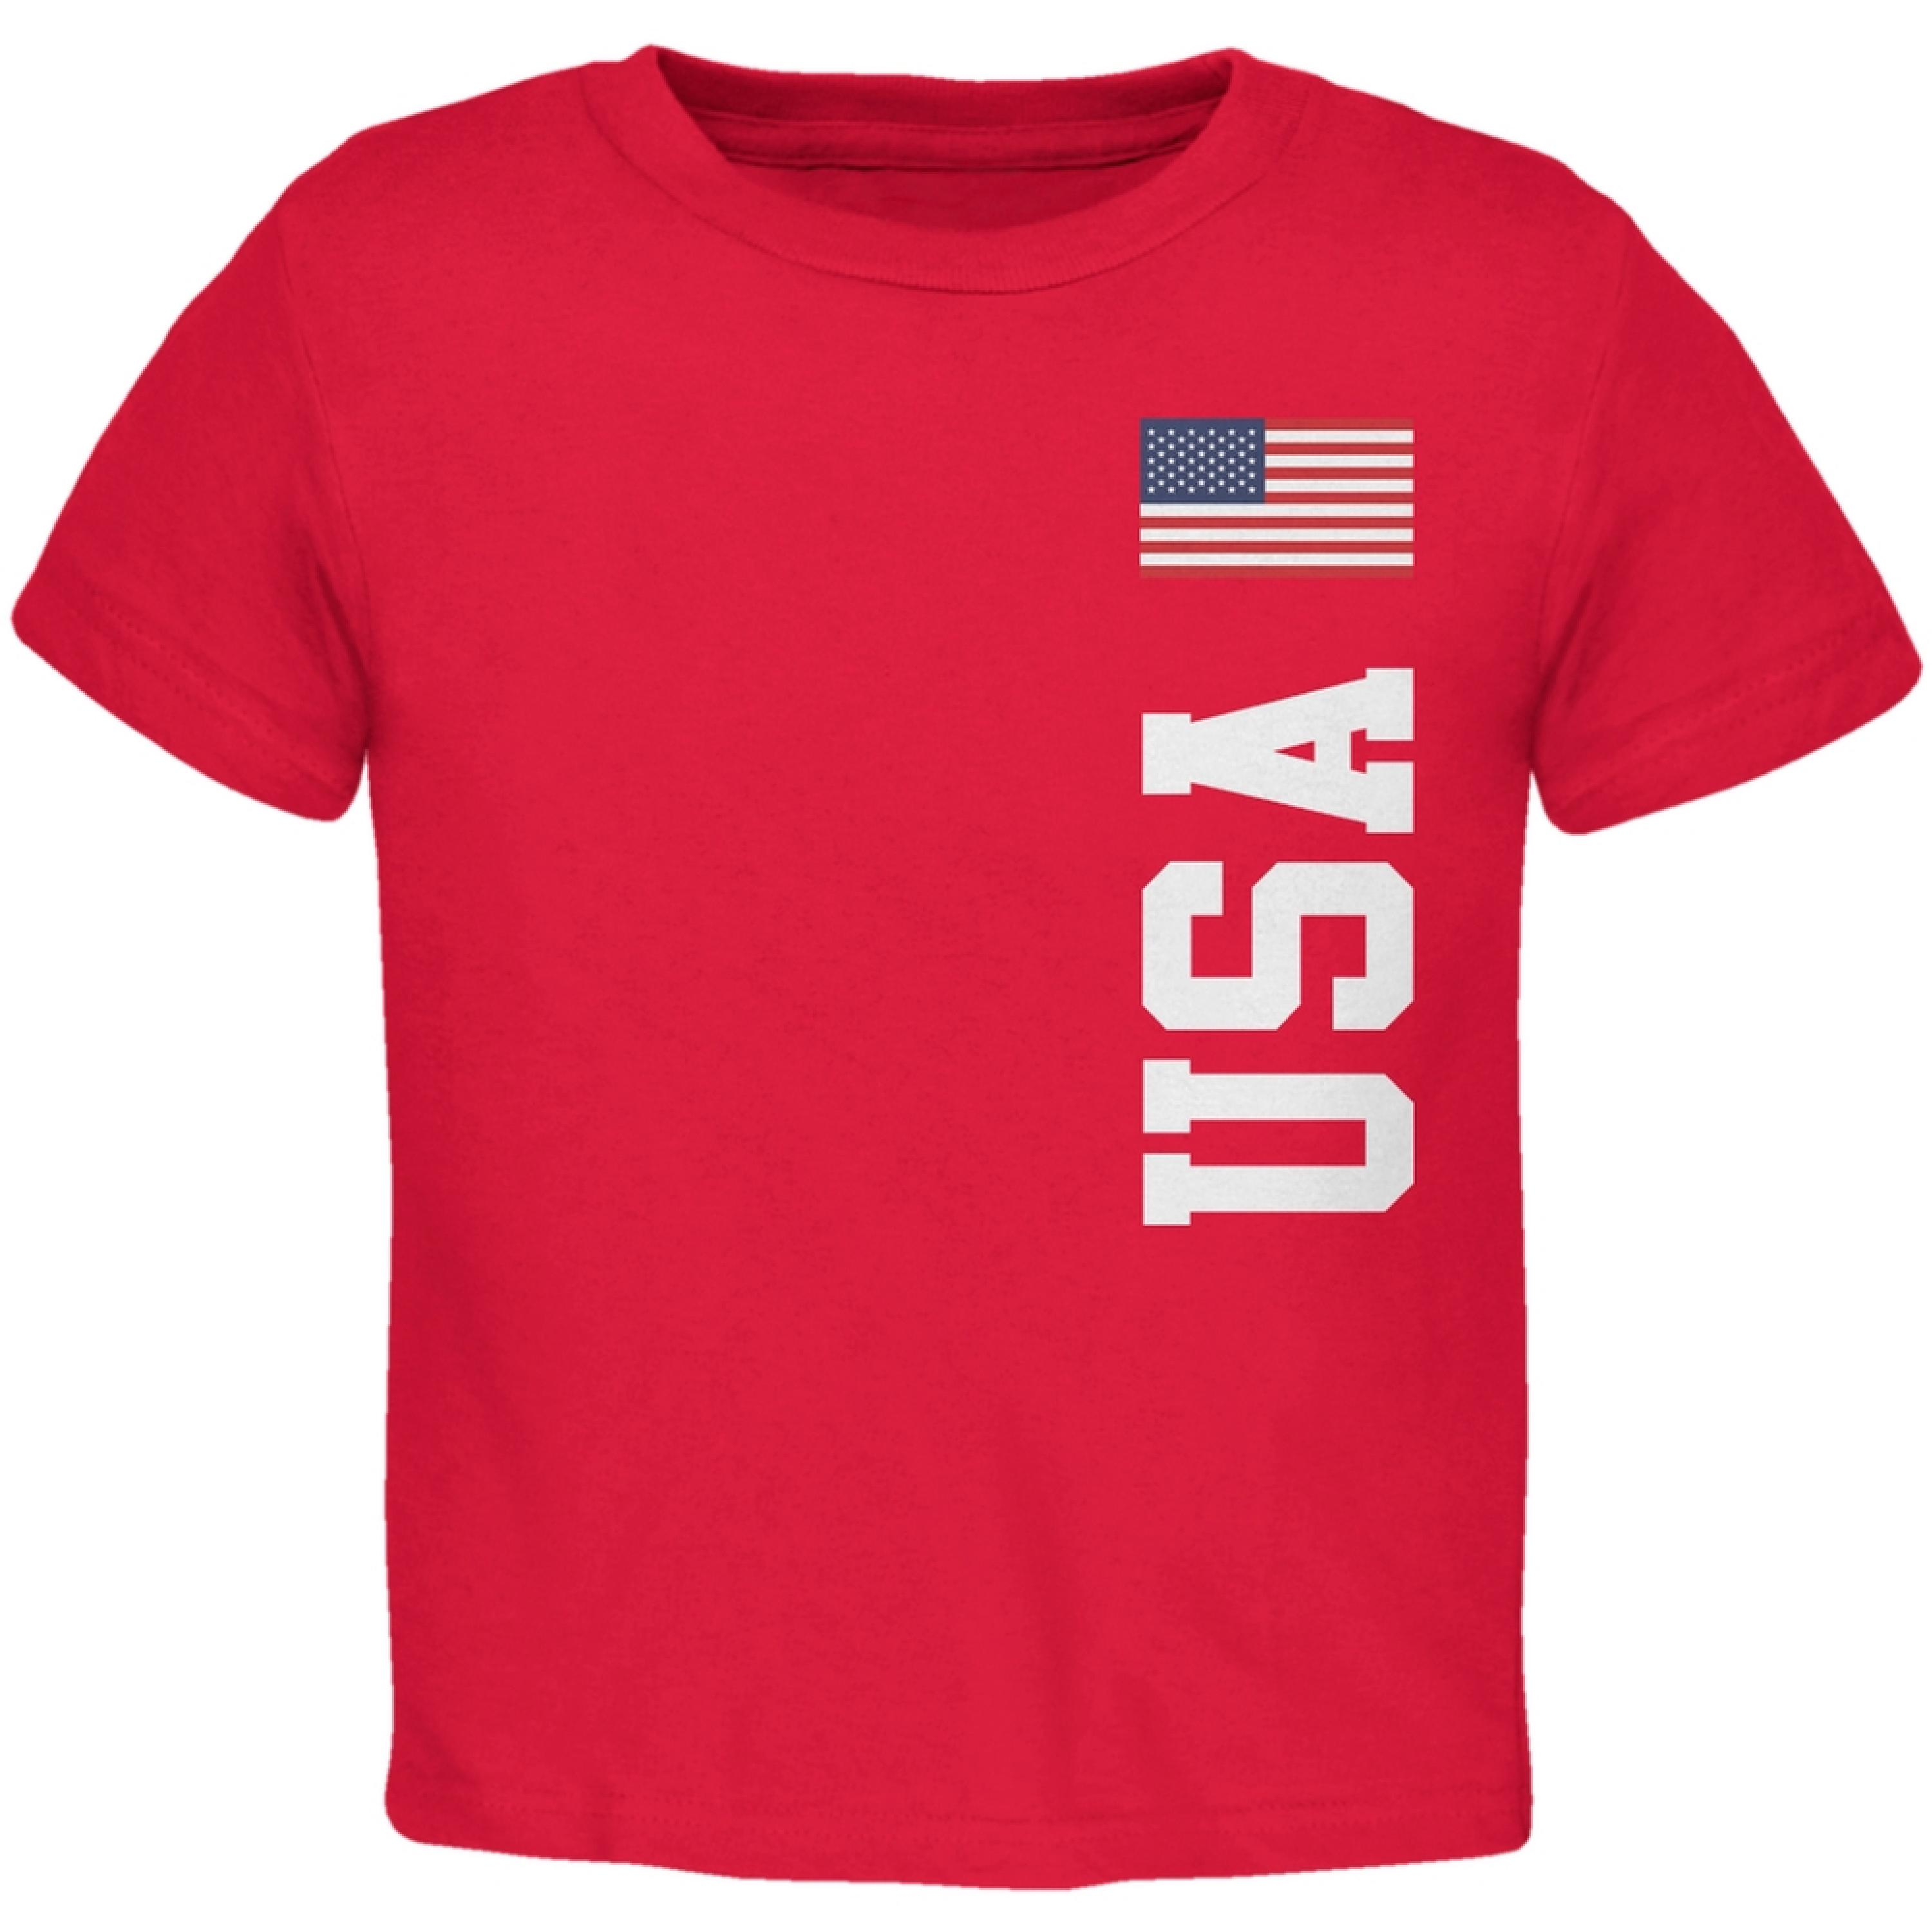 World Cup USA Red Toddler T-Shirt